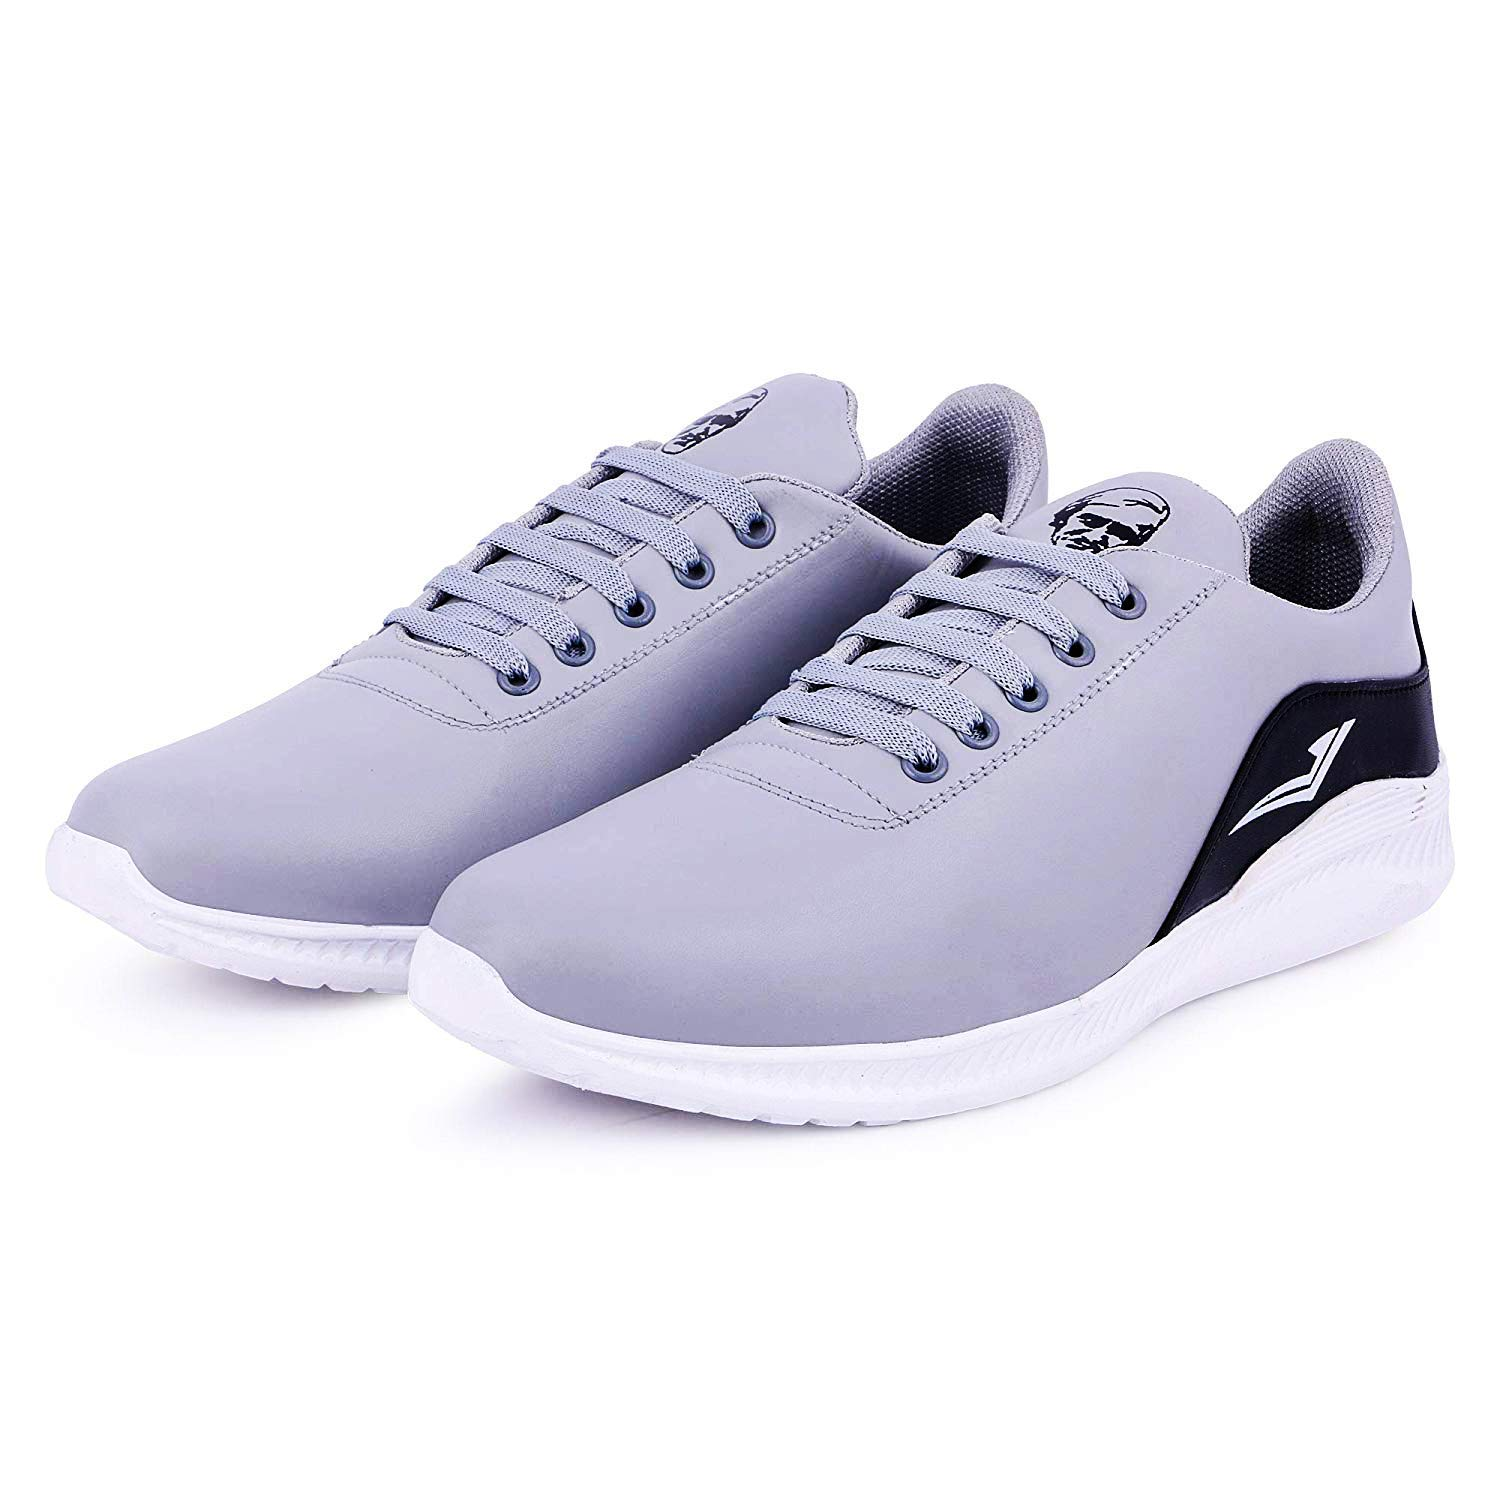 Fashion Casual Latest Collection Shoes